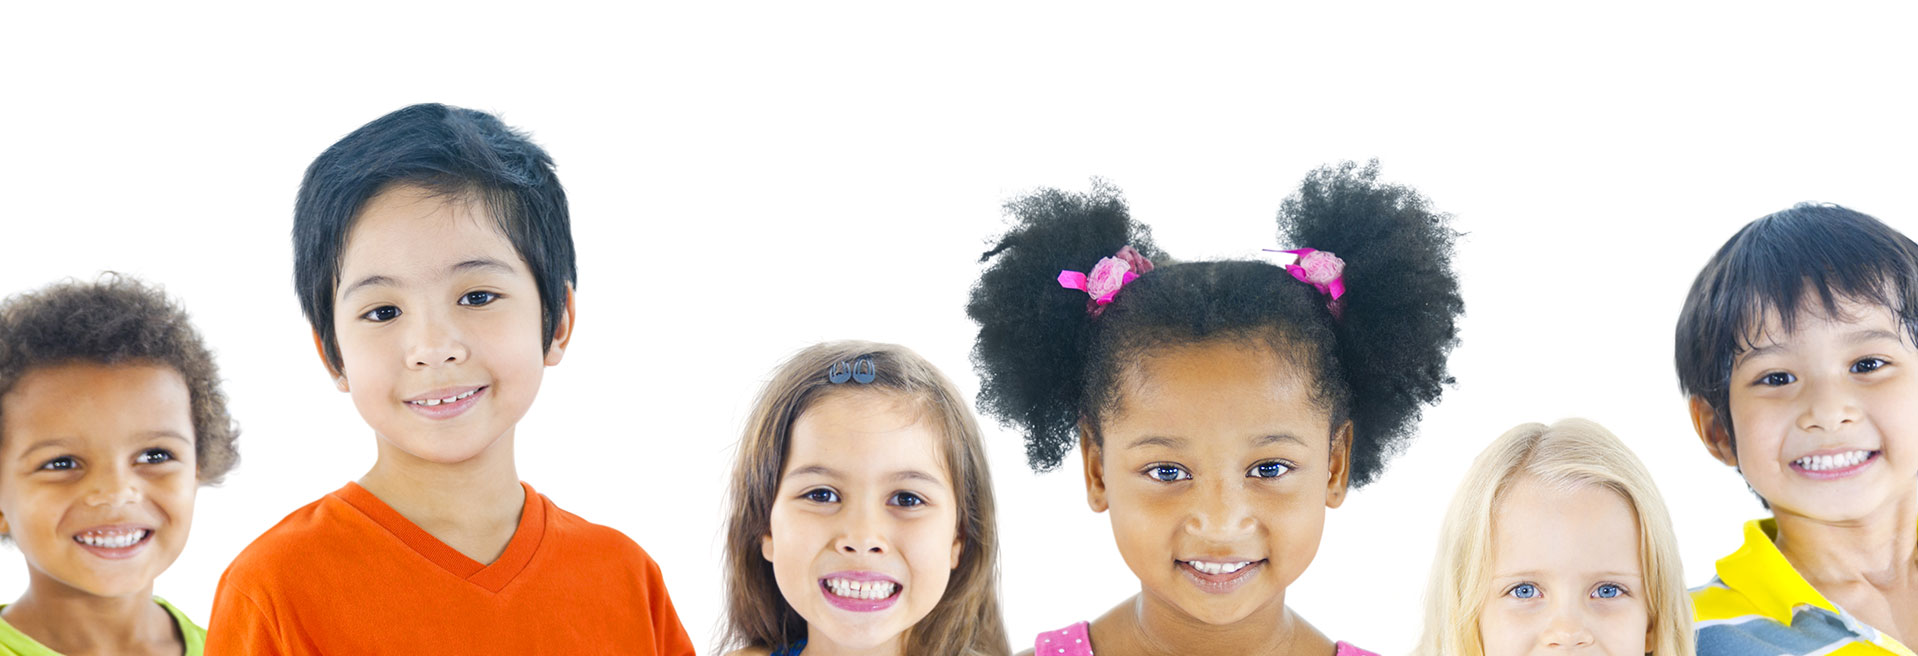 Happy group of kids - Pediatric Dentist in San Angelo, TX